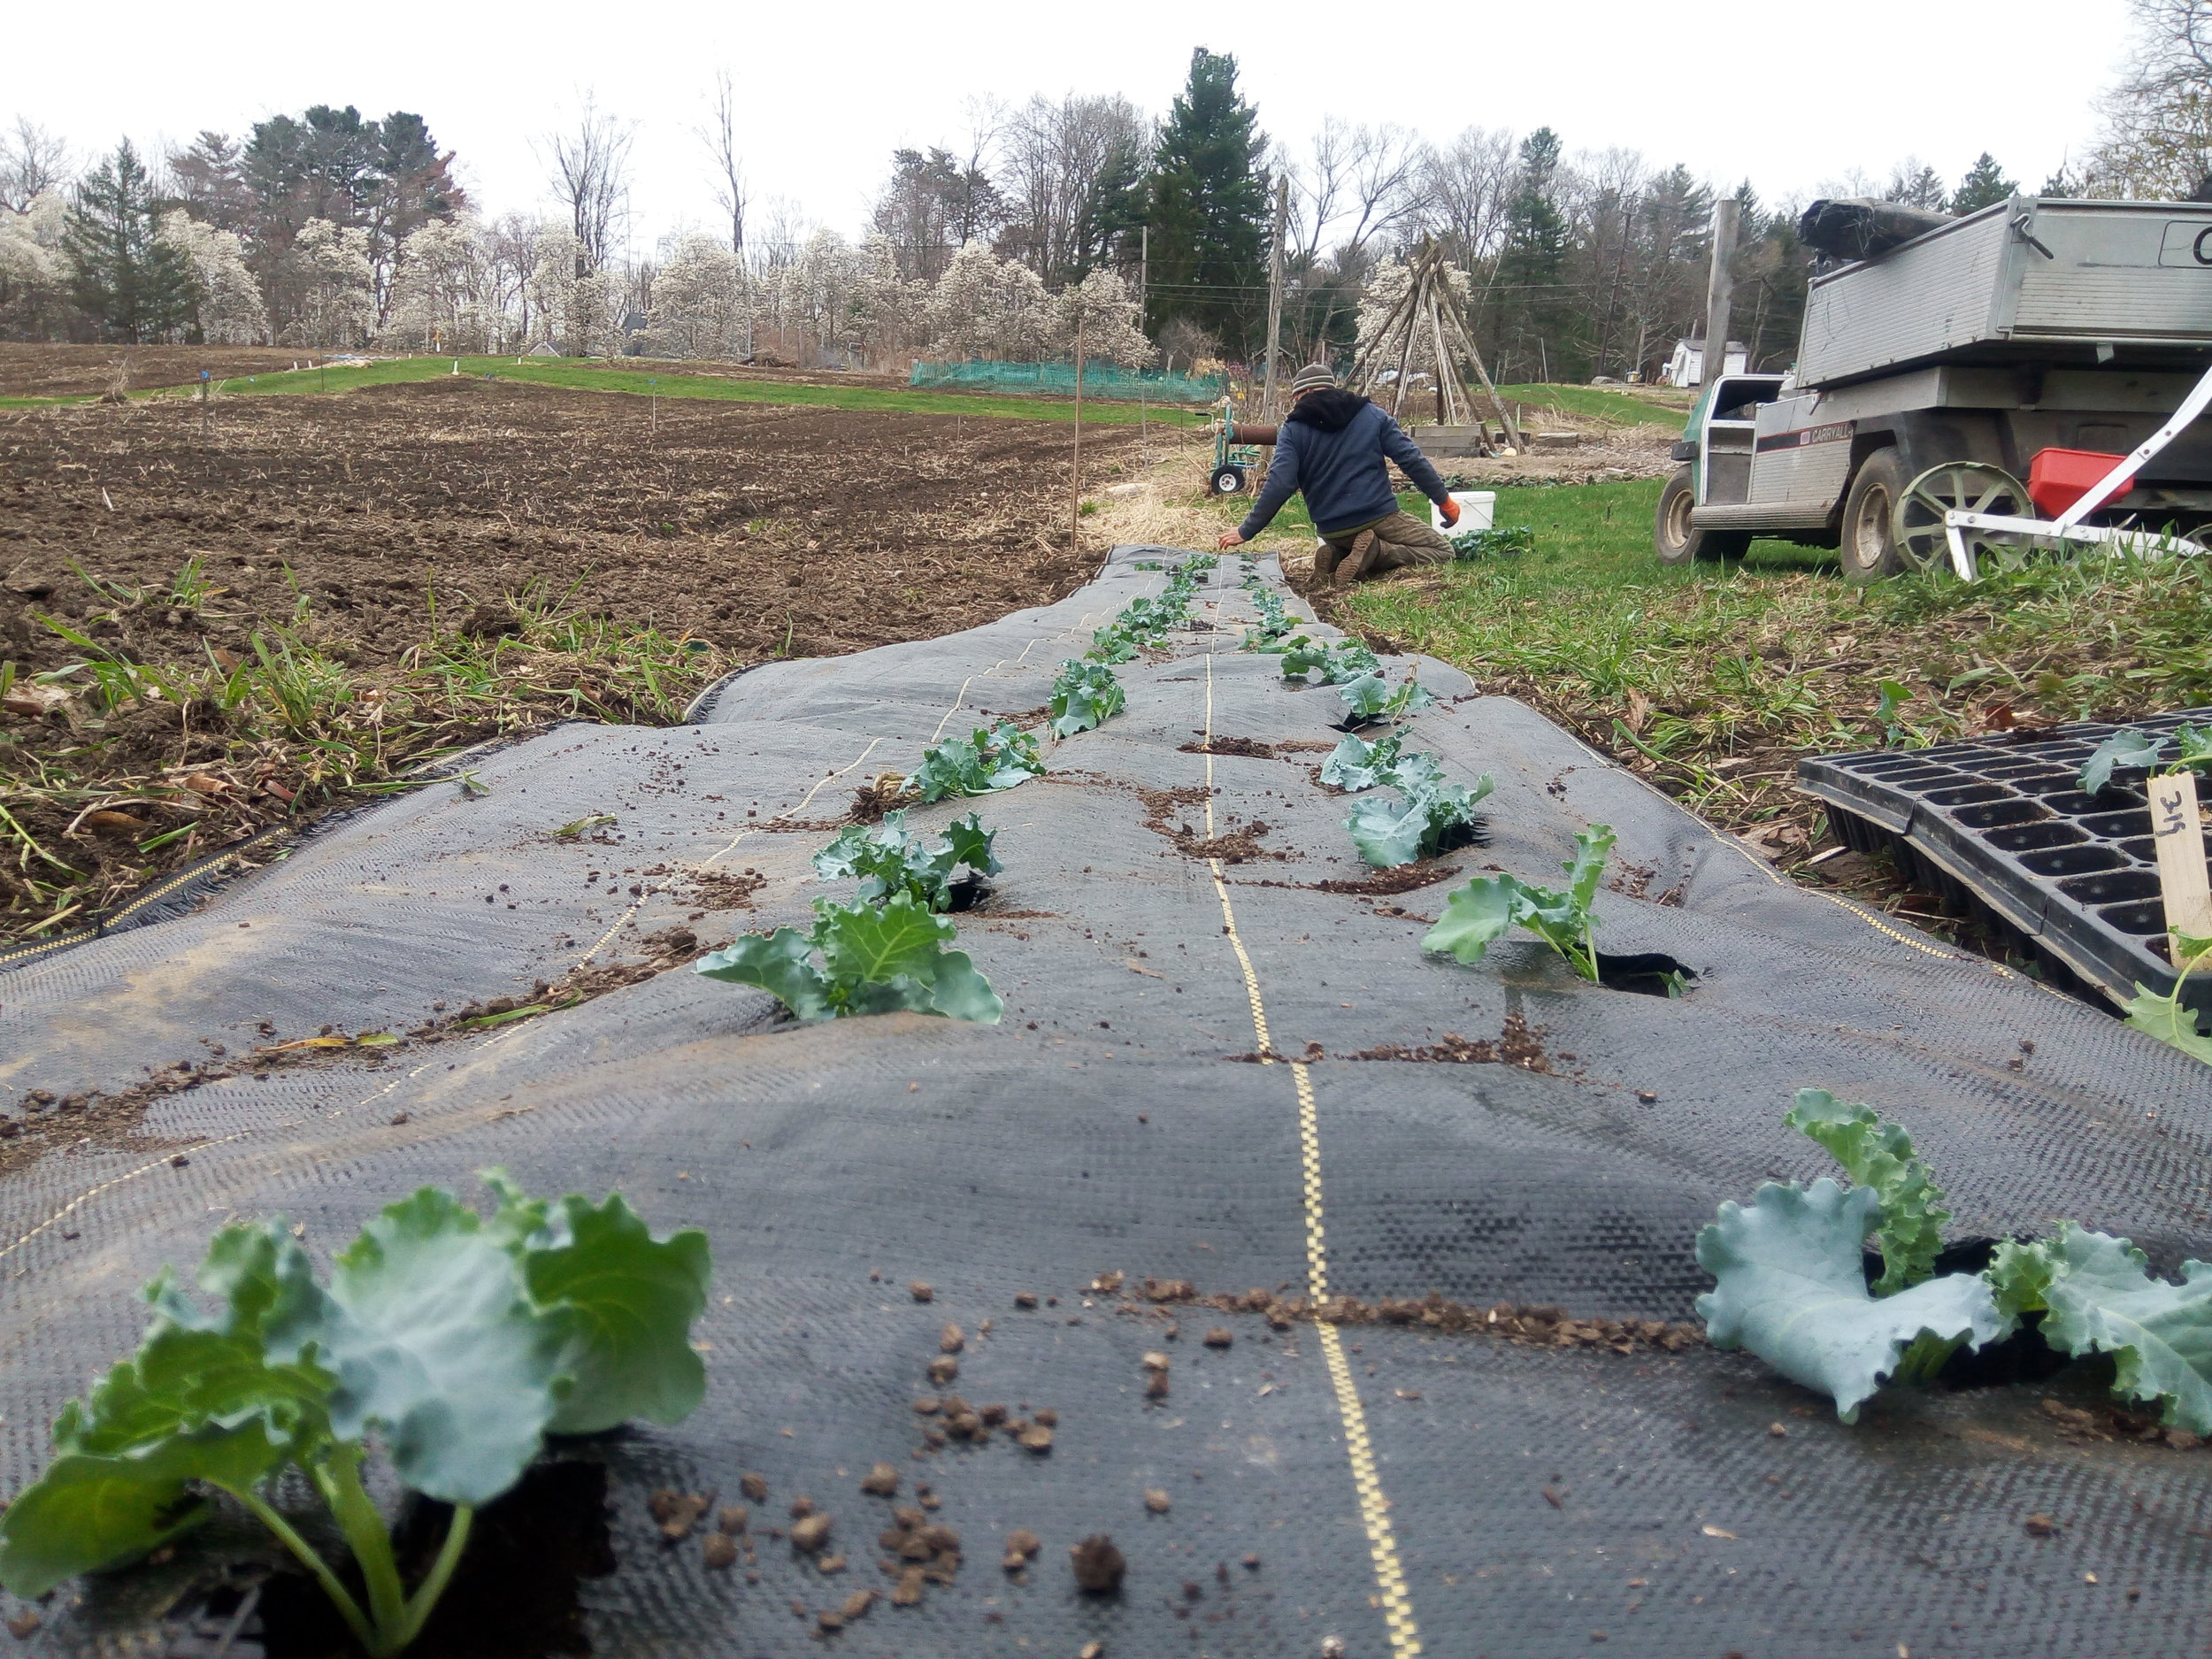 The first kale of the season goes into the ground!